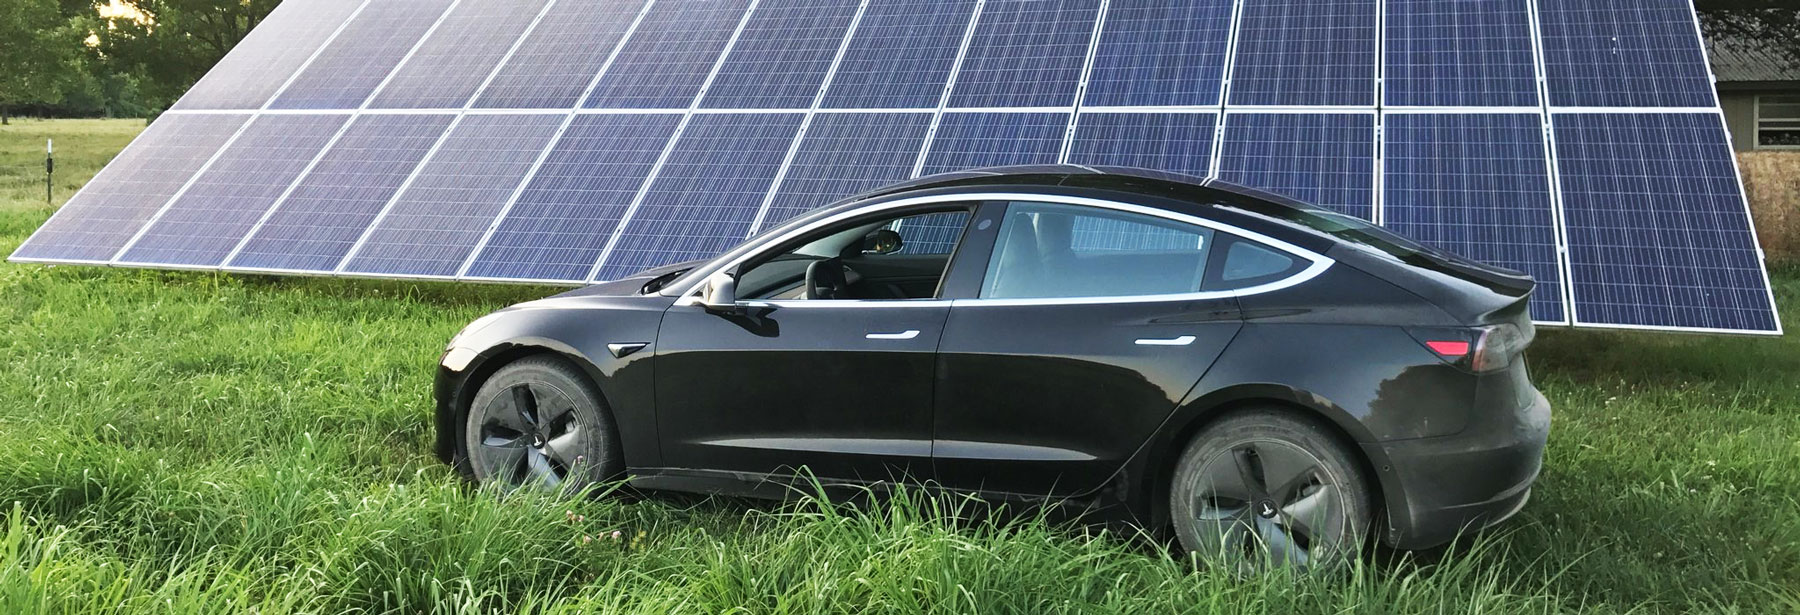 The Rise Of Electric Vehicles And Their Batteries